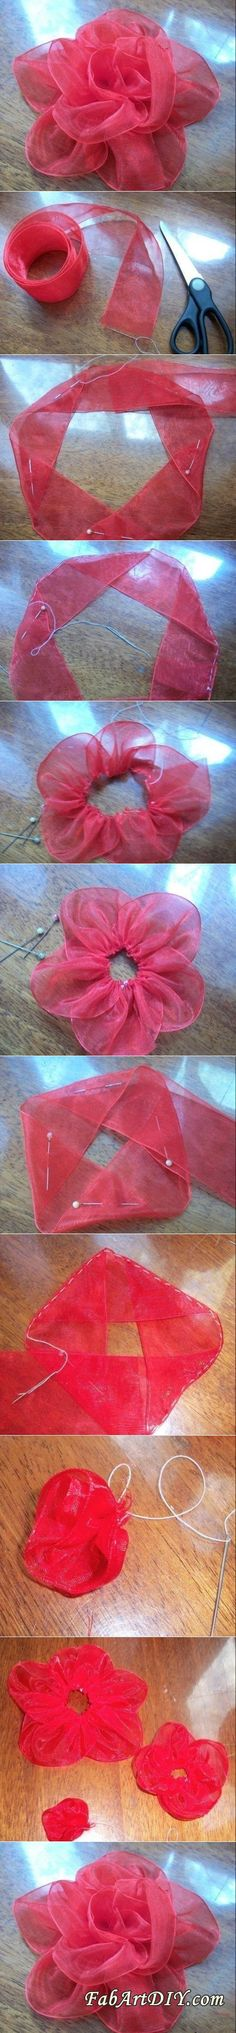 DIY Big Silk Ribbon Rose - http://mistergandmecrafts.me/diy-big-silk-ribbon-rose/